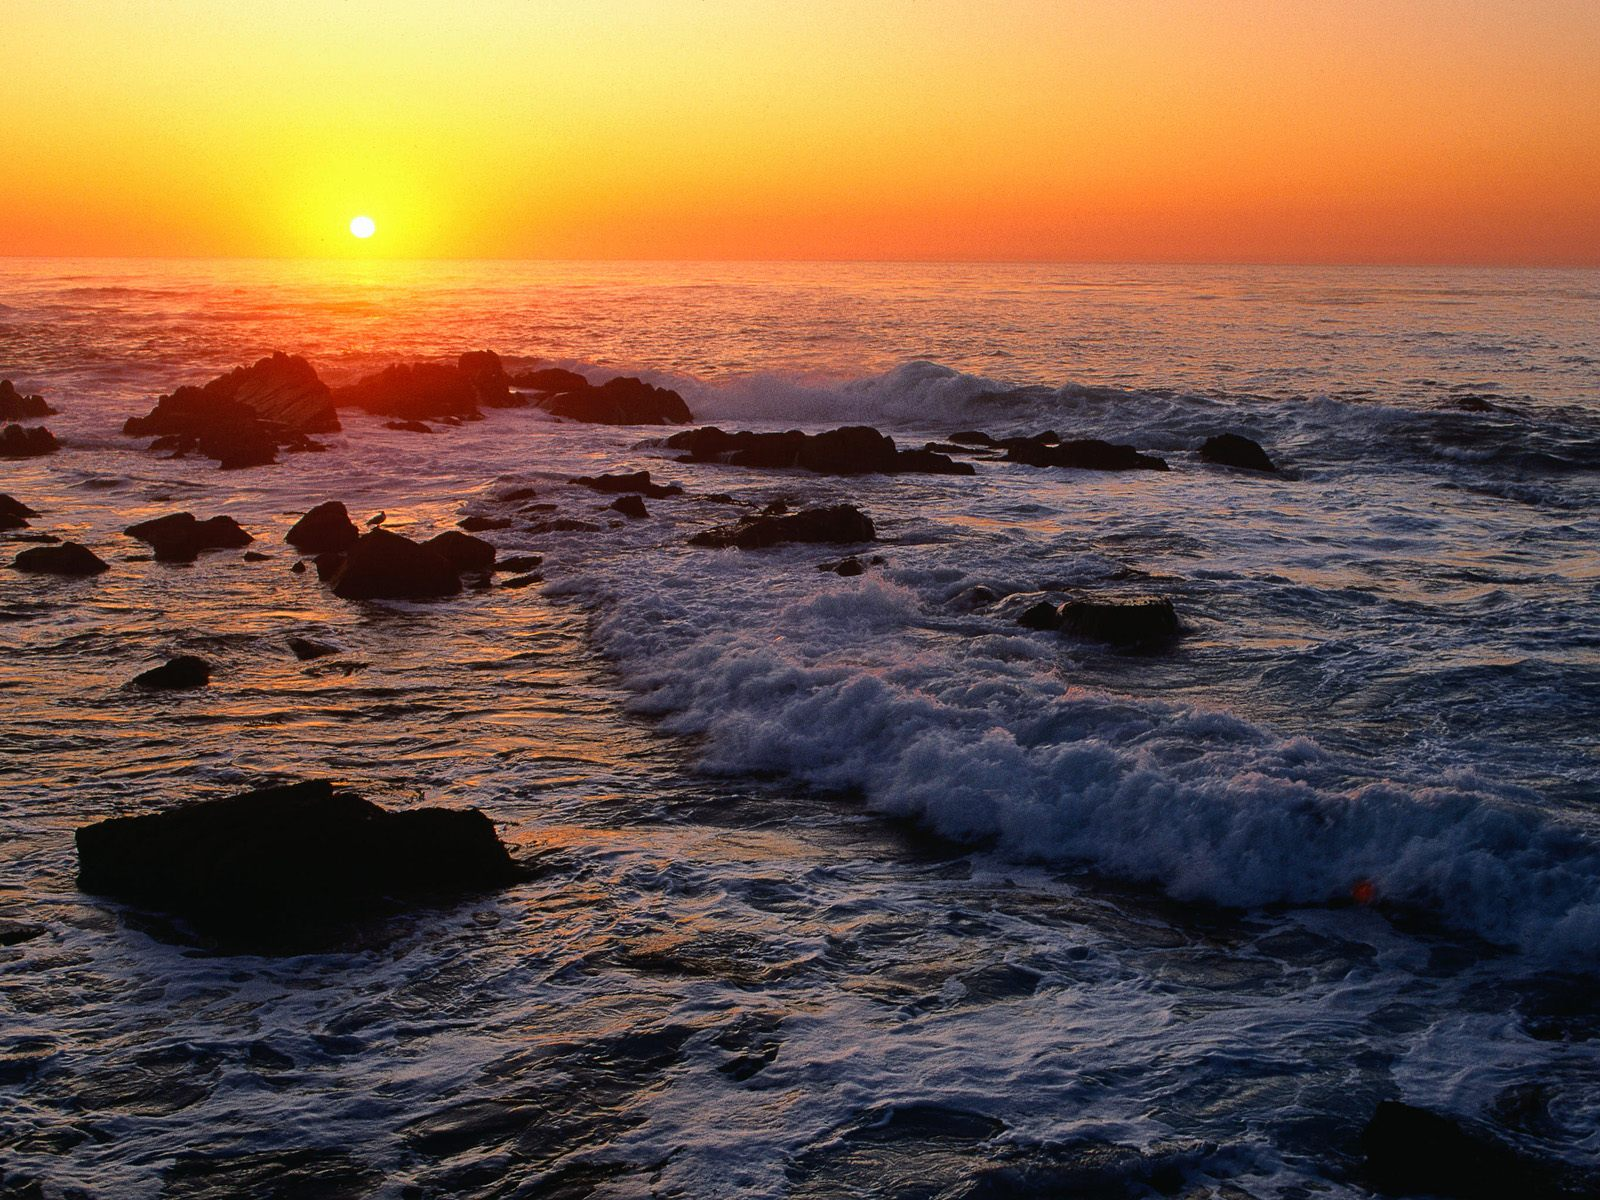 ocean sunset wallpapers